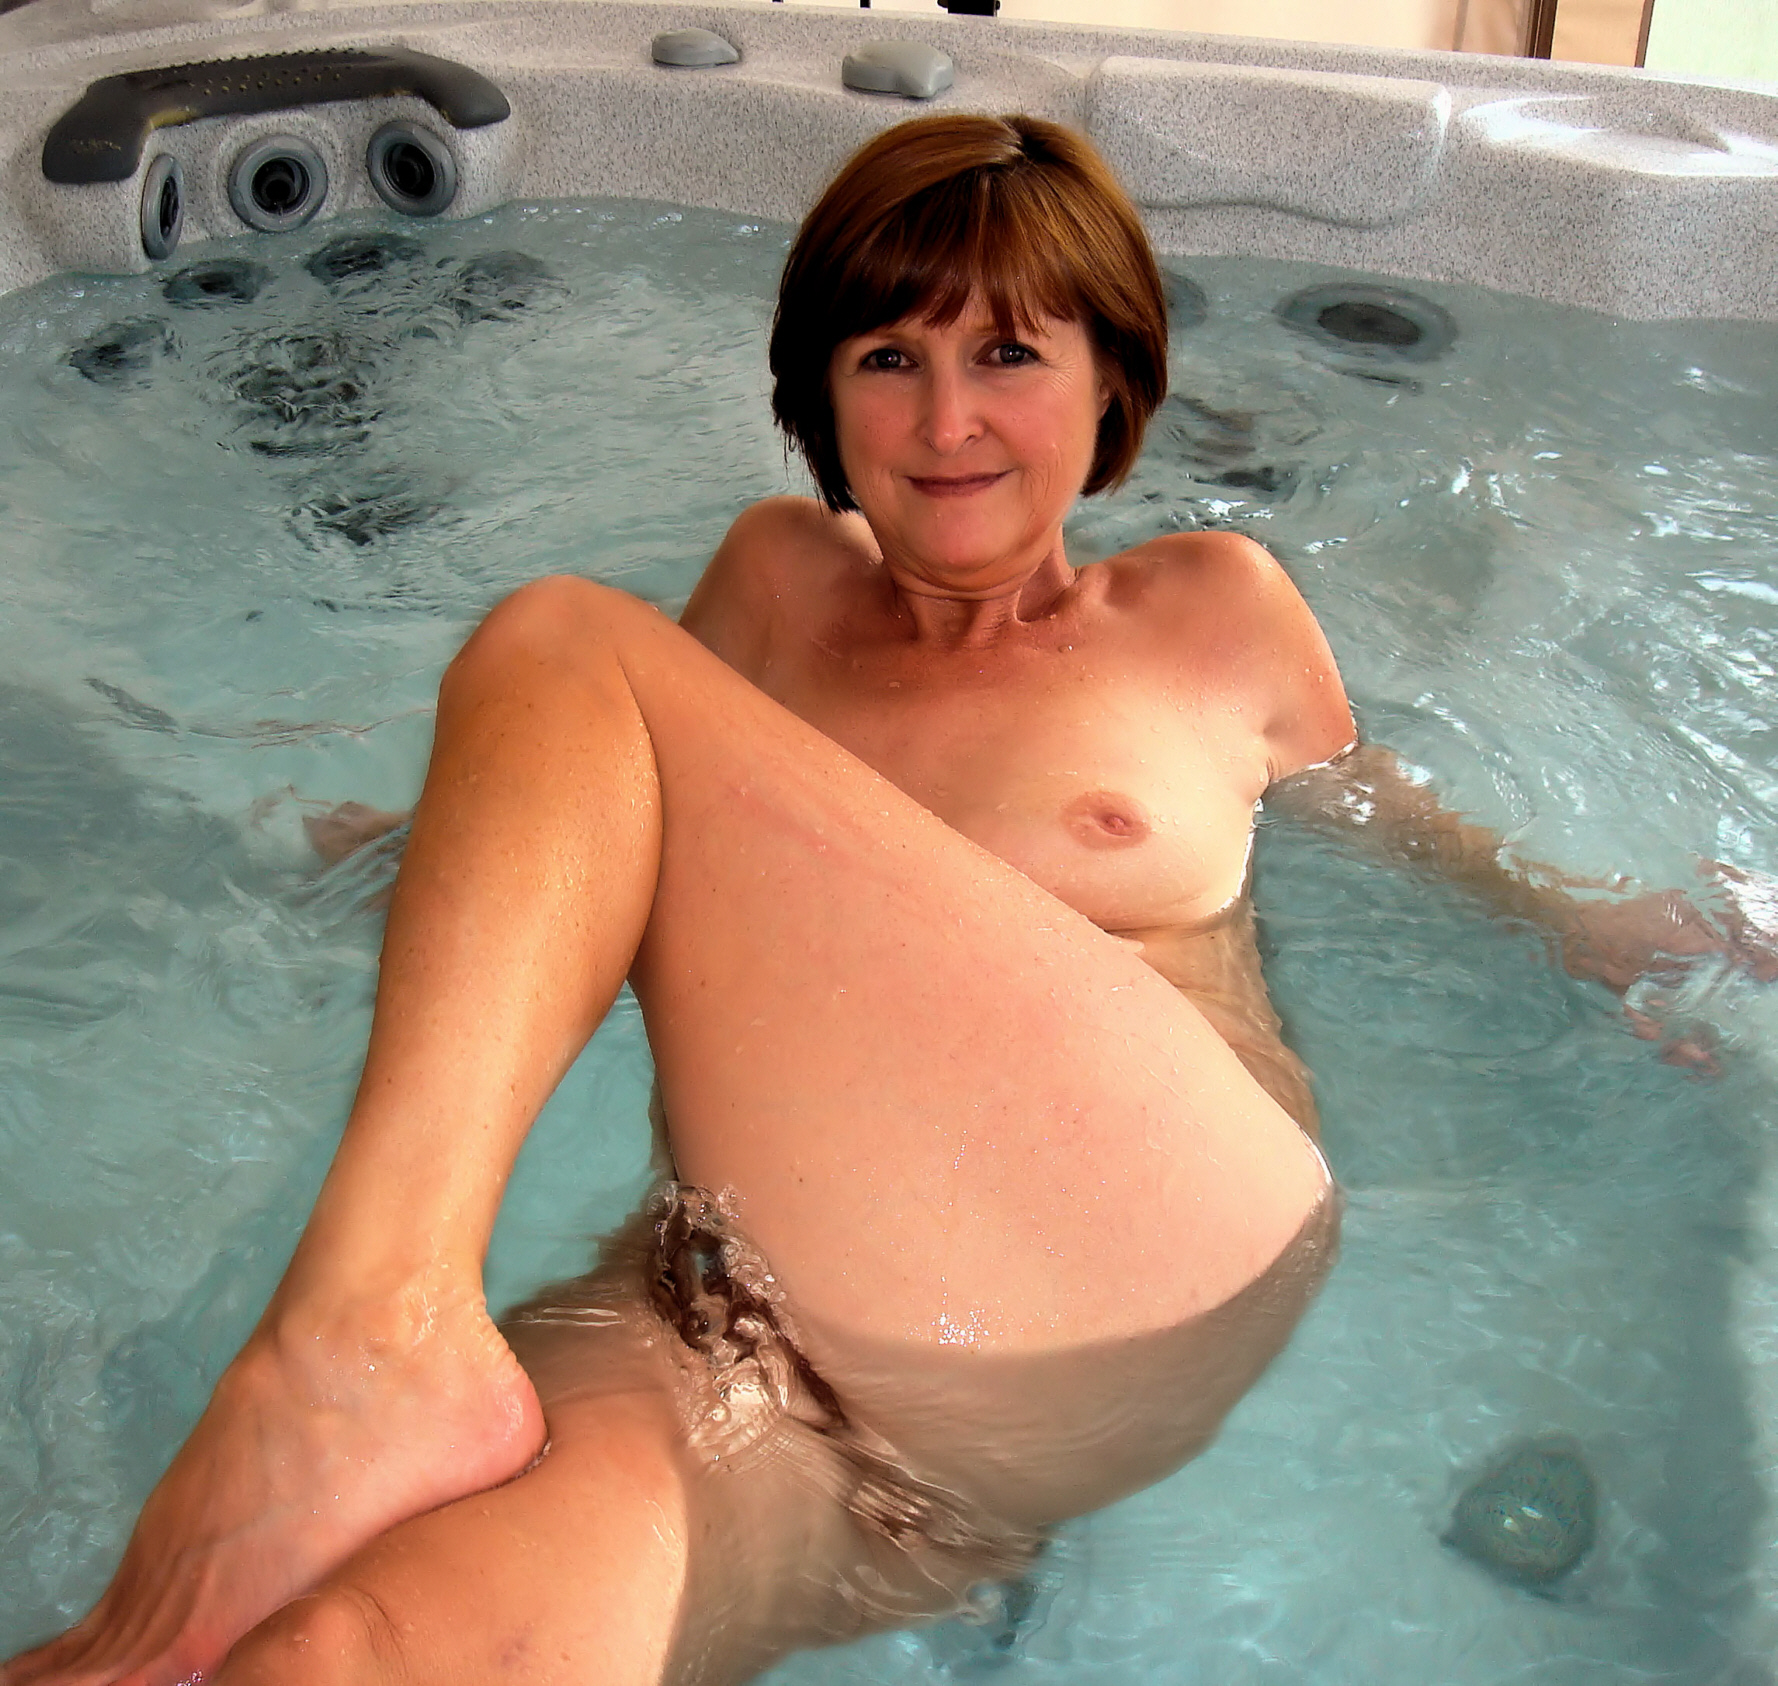 Naked redhead in hot tub #3